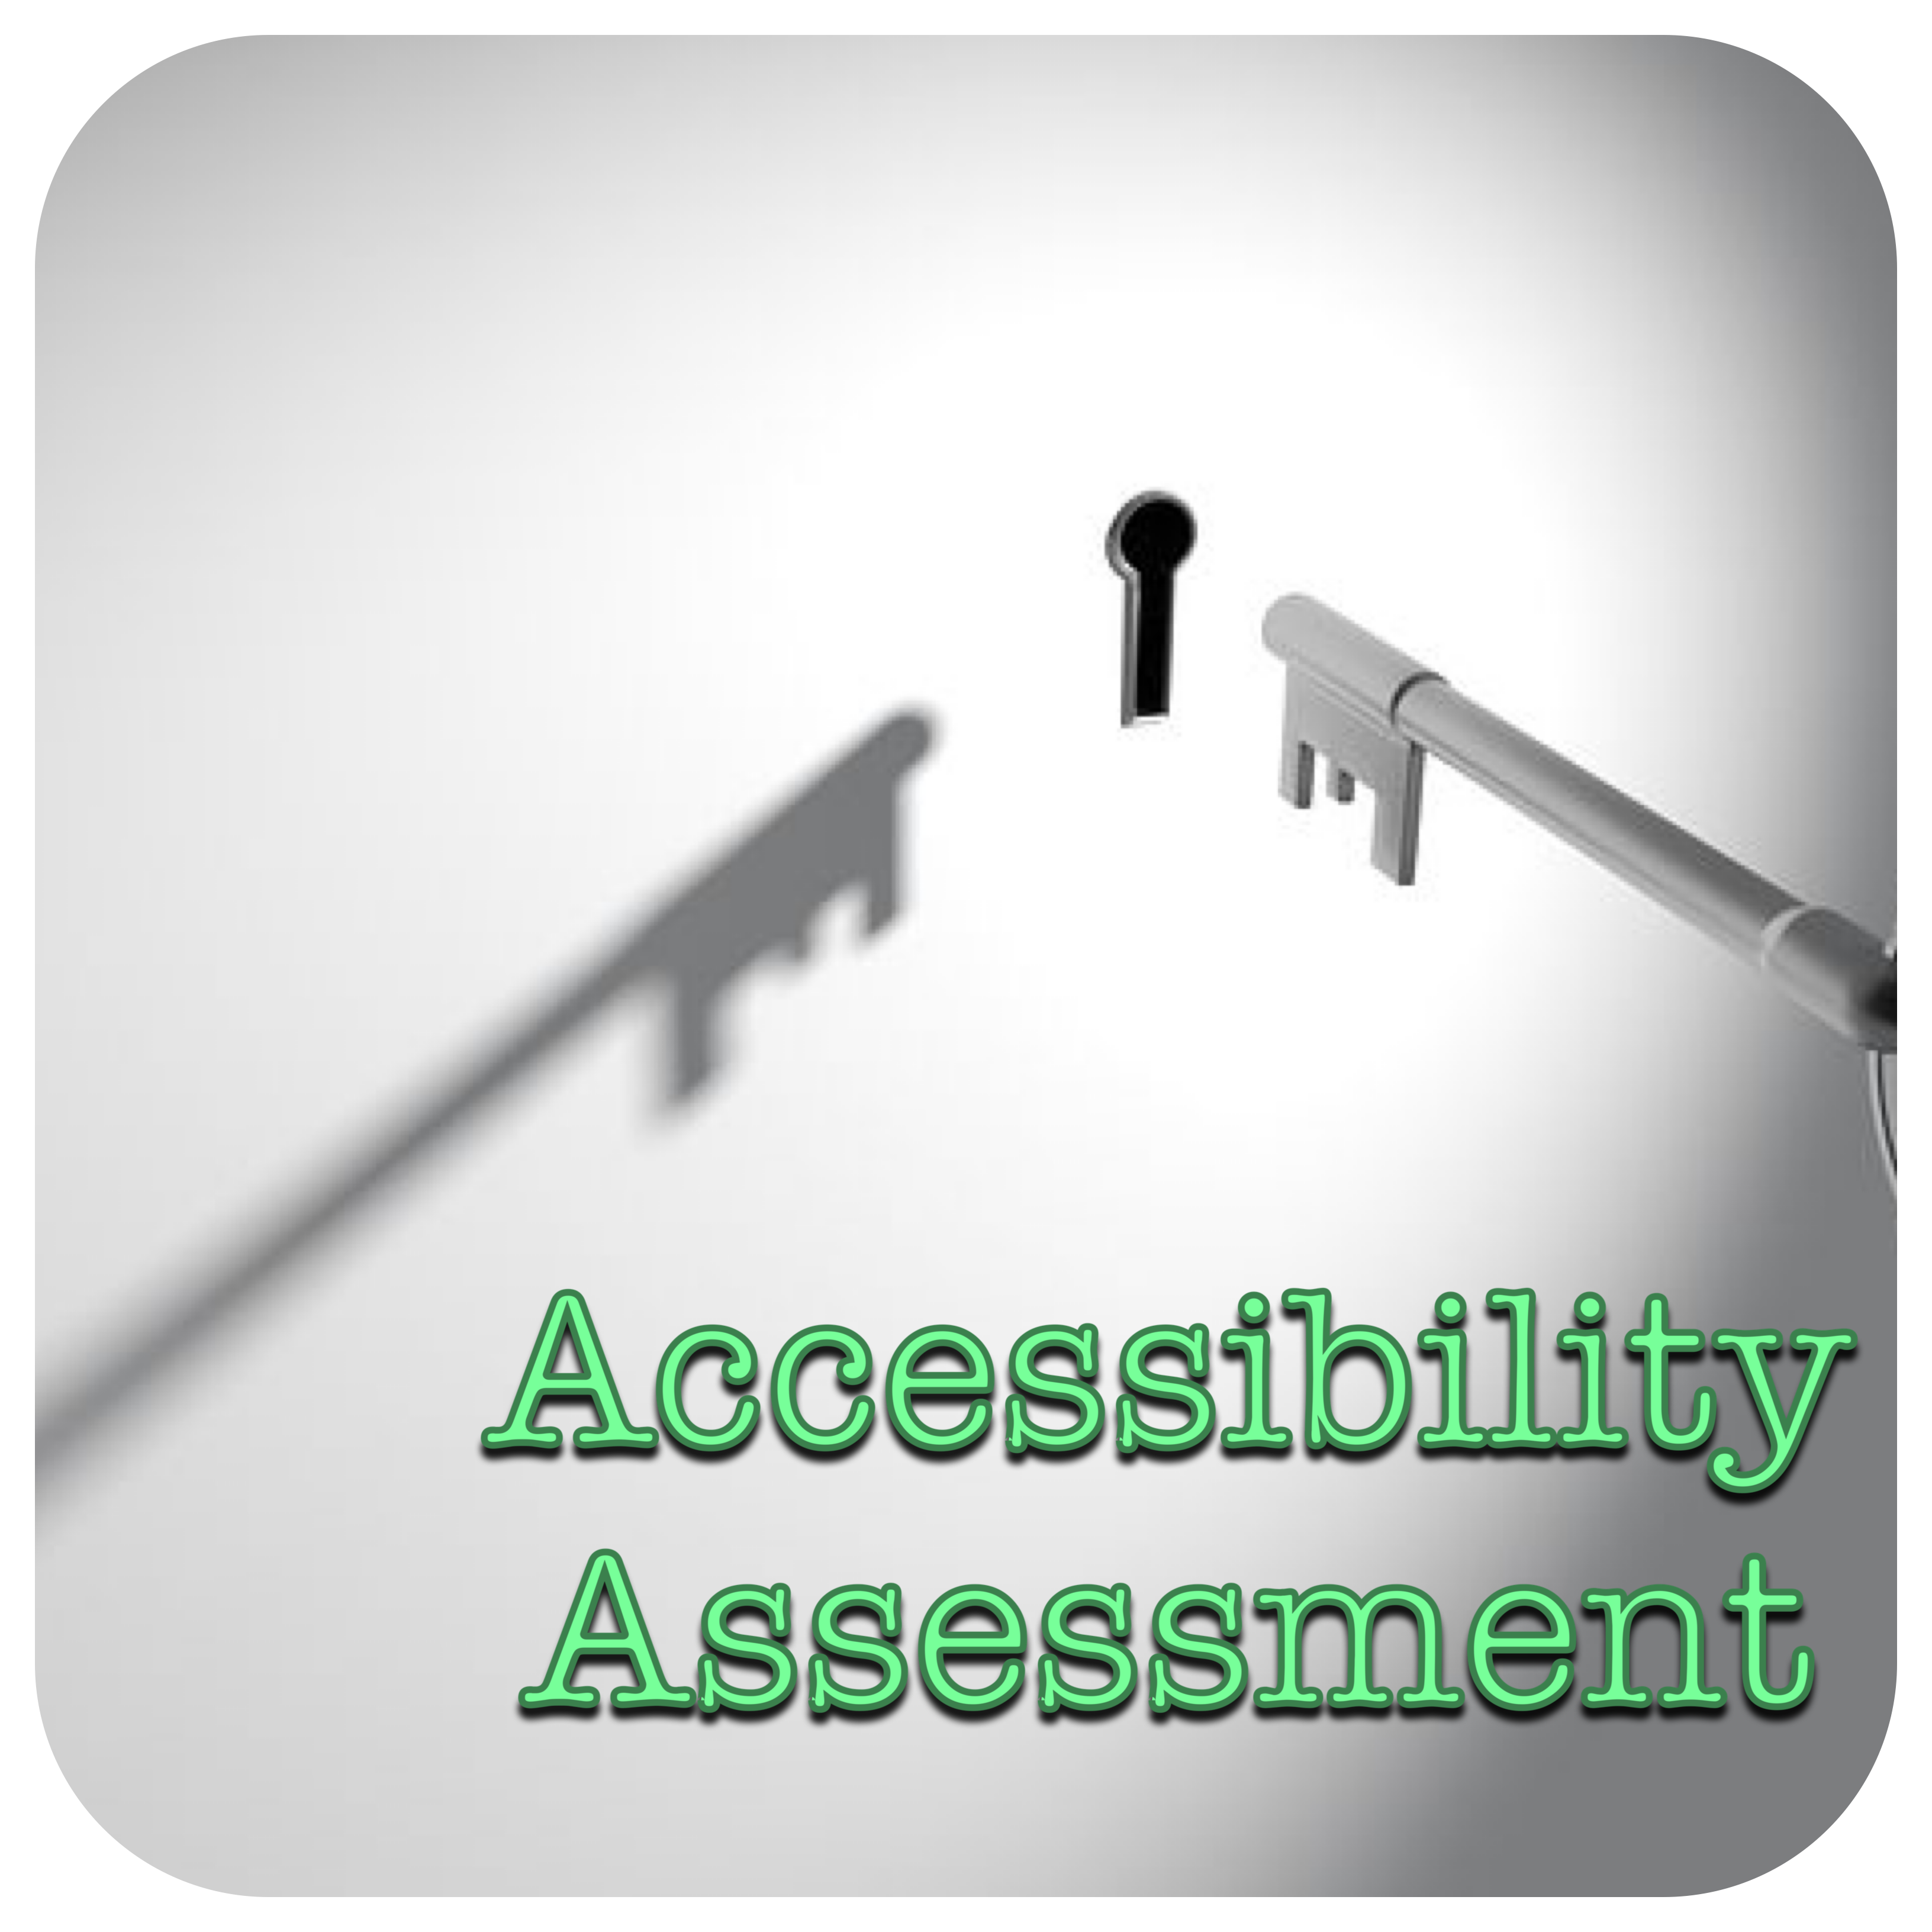 Accessibility Assessment (Key going in lock)